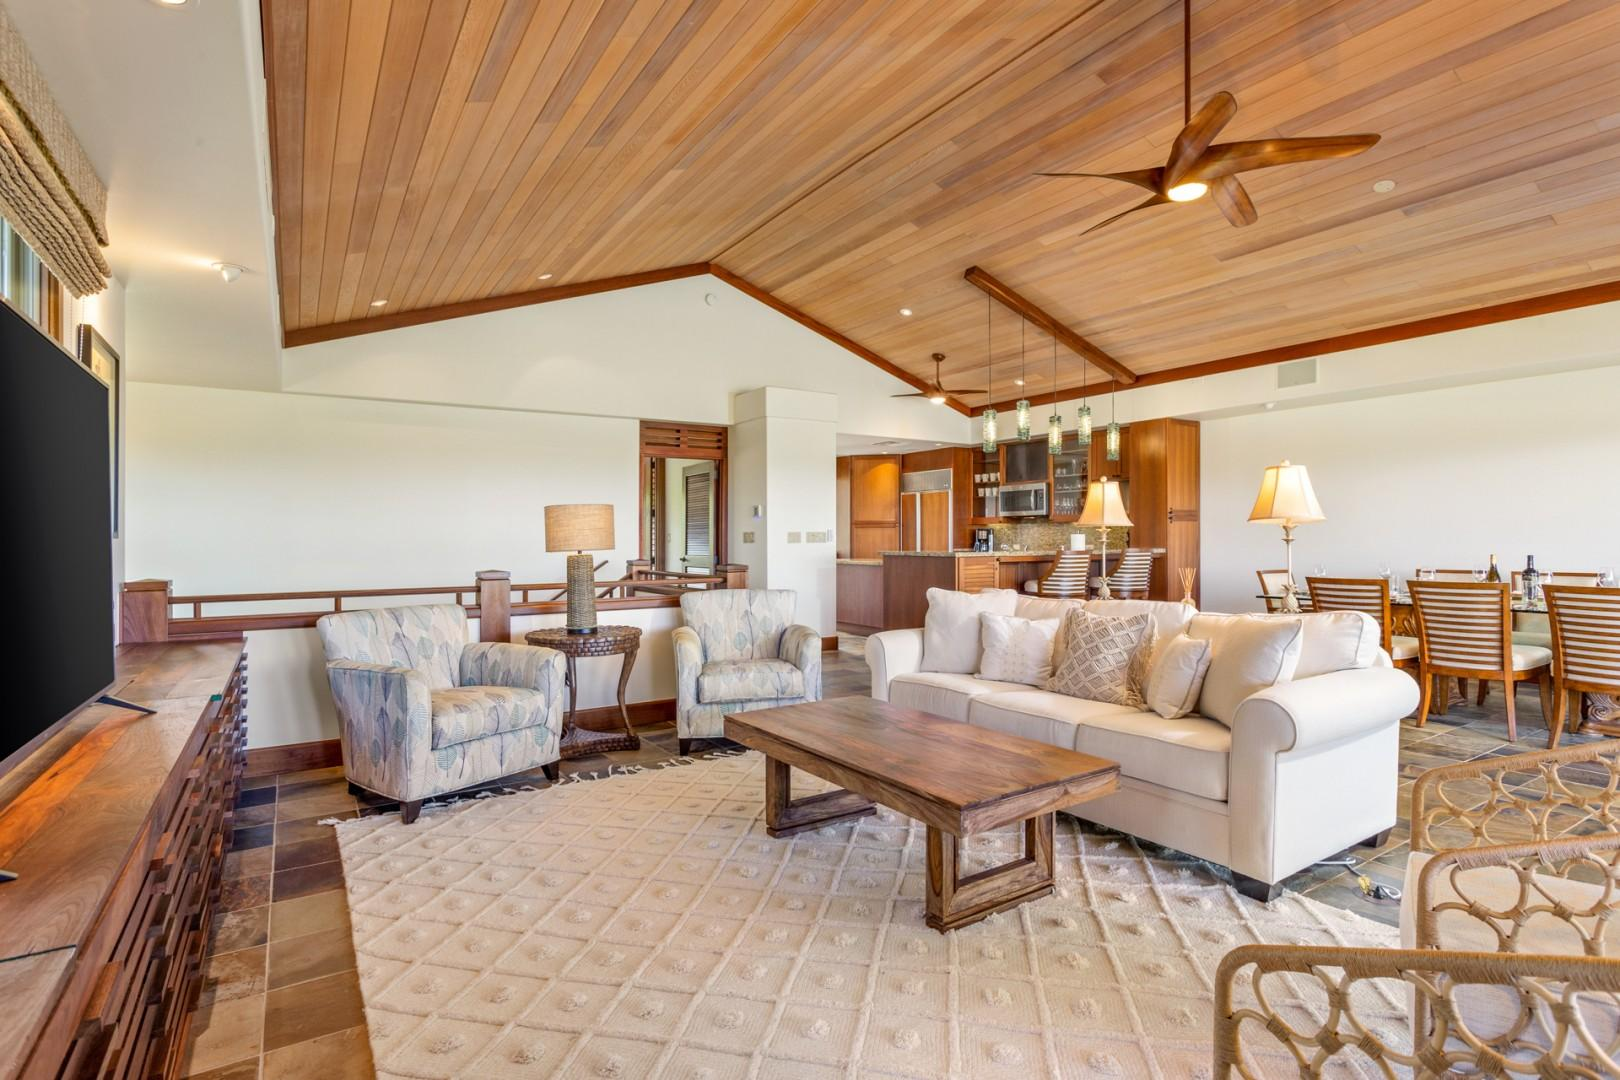 Reverse view of great room showcasing soaring ceilings and vibrant natural light.